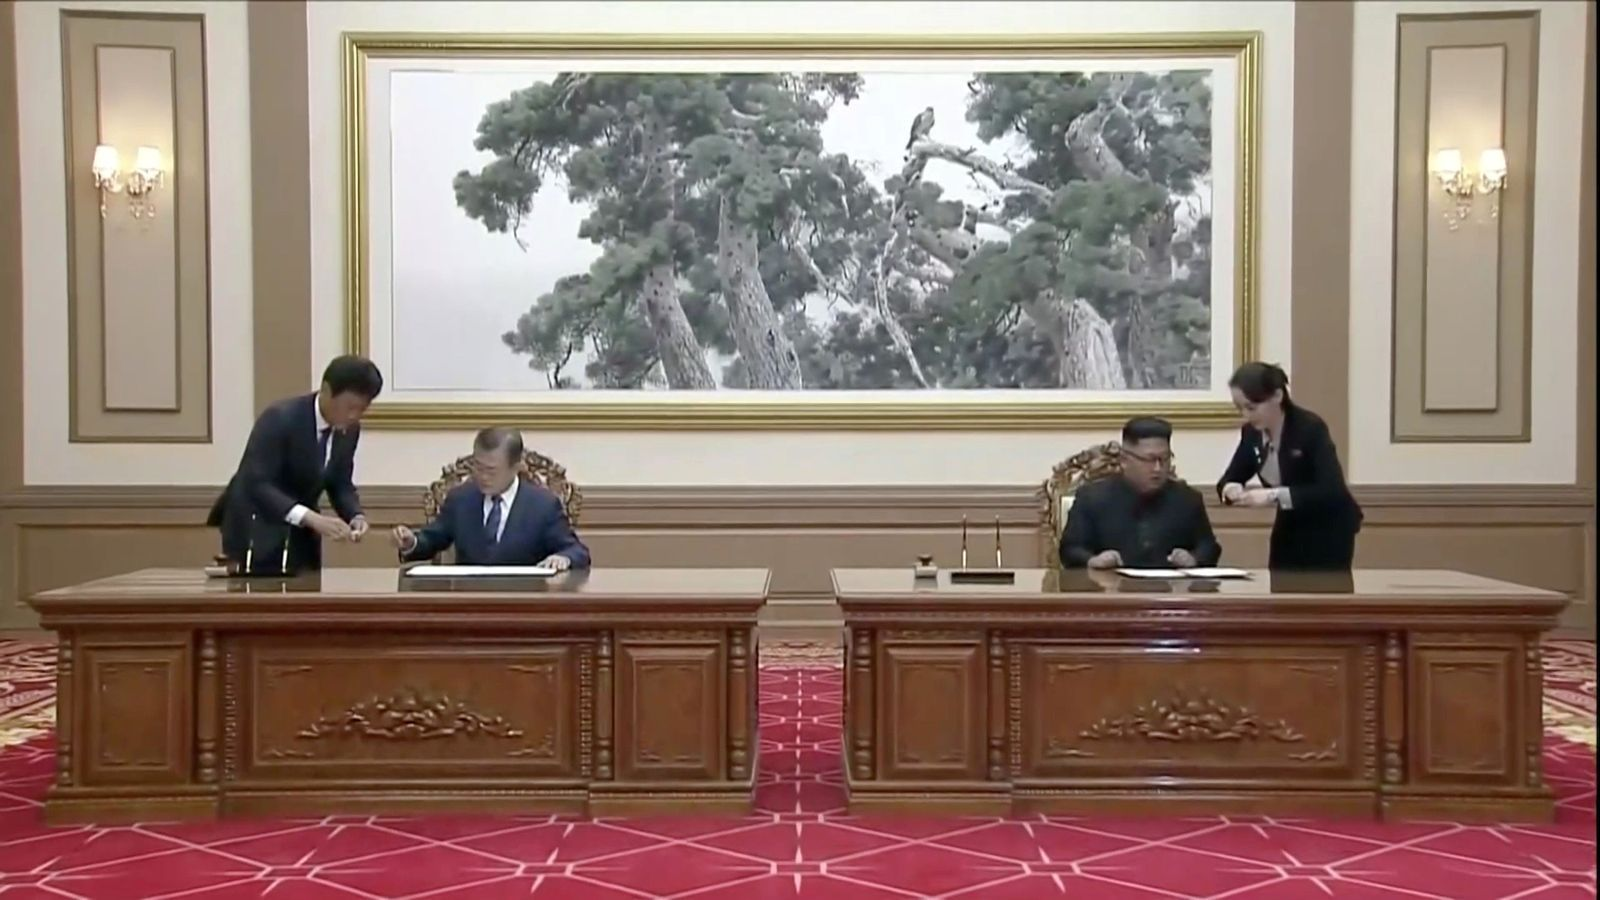 Moment en què Kim Jong-un i Moon Jae-in signen el document d'acord.